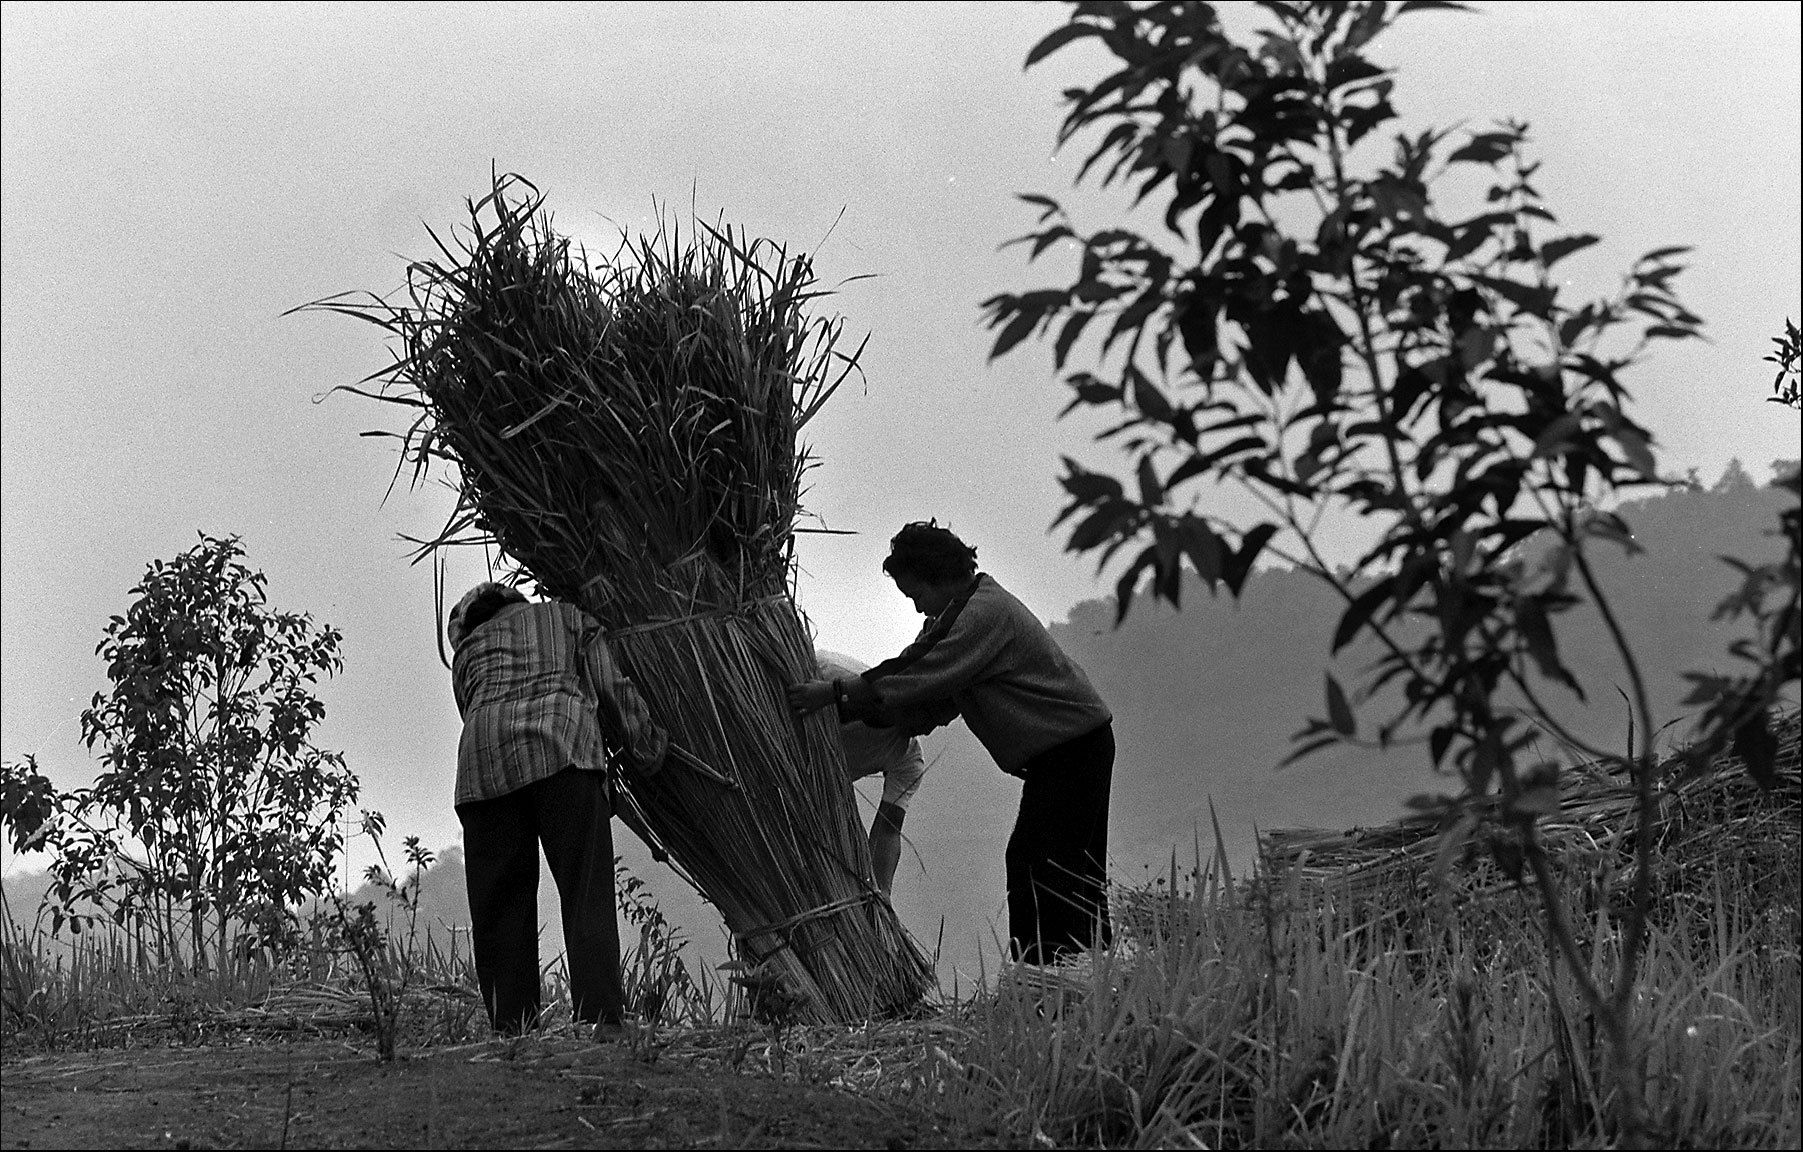 Akha villagers bundle hay for repairs to their grass huts.